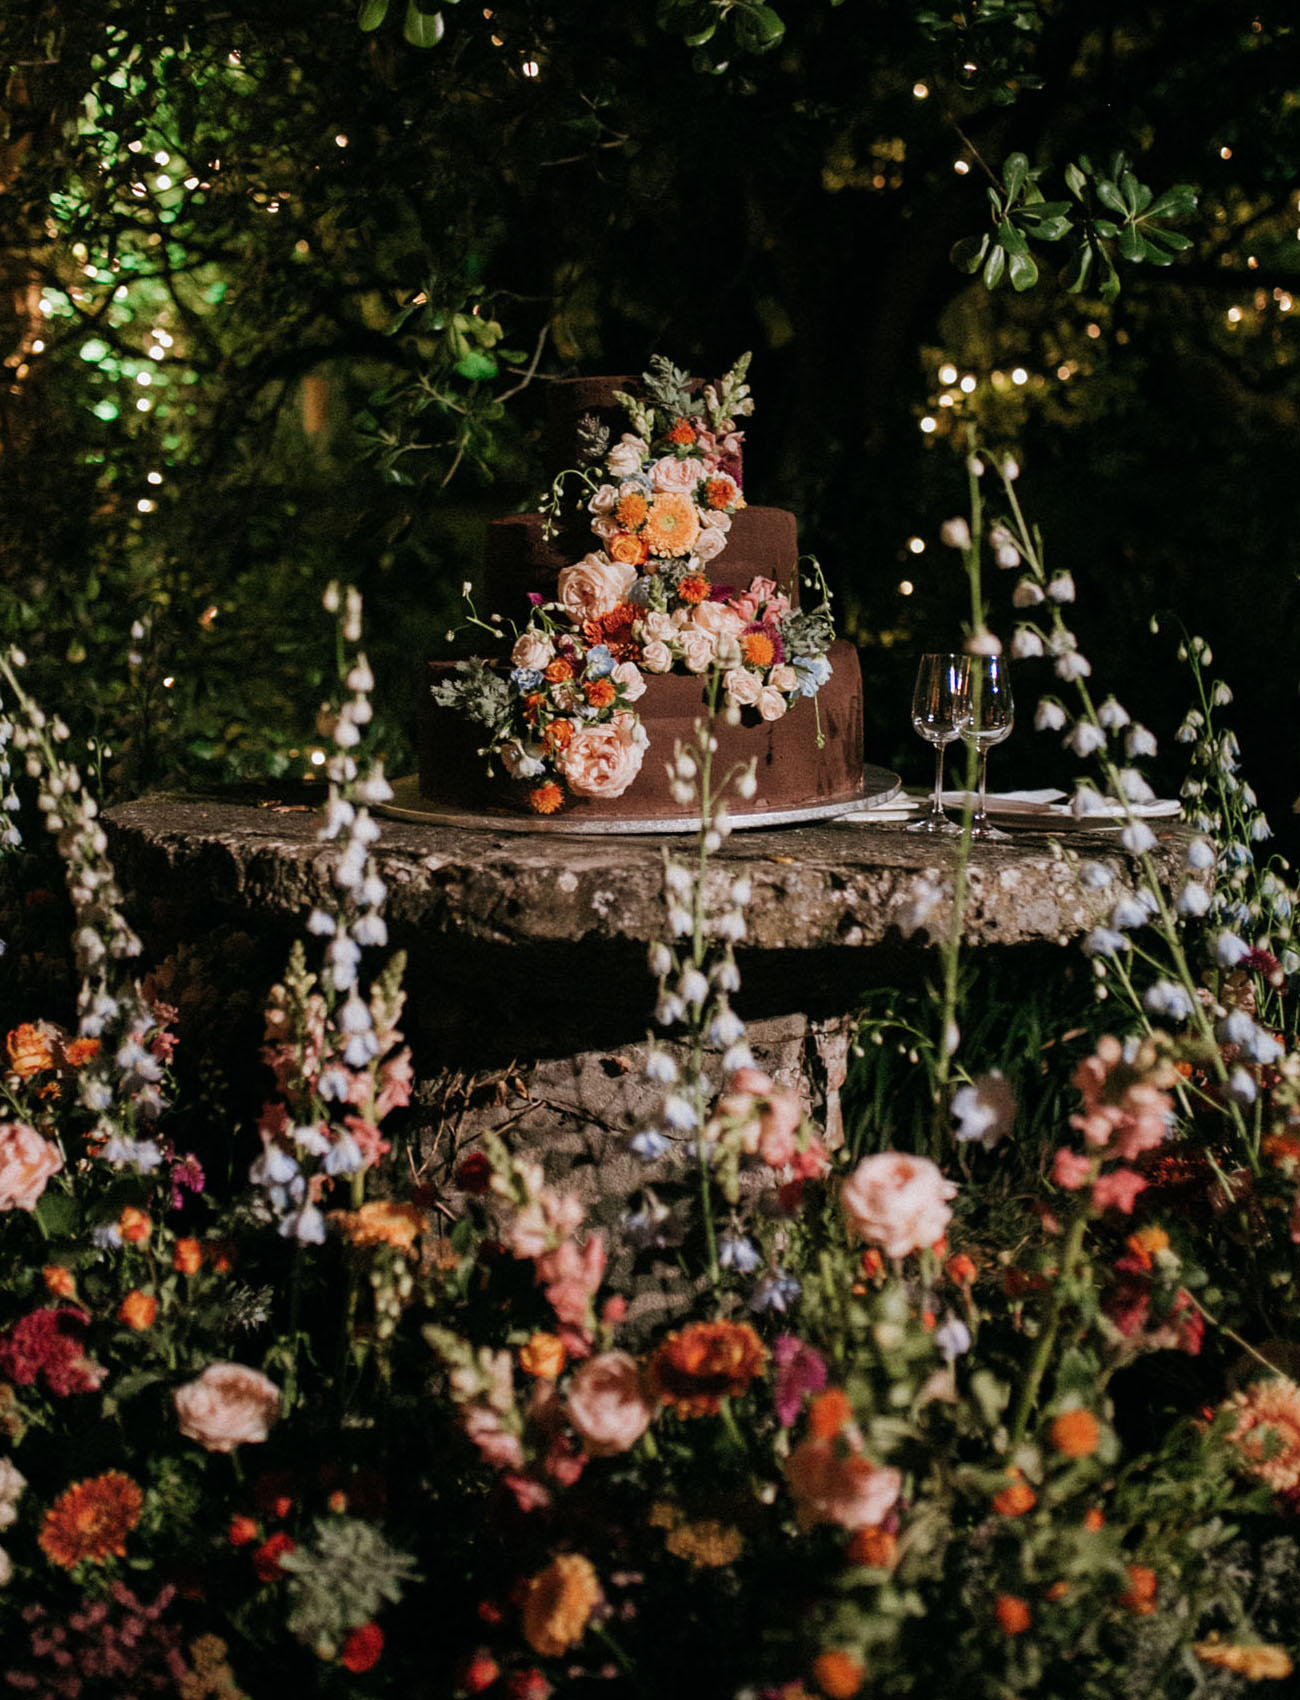 The wedding cake was chocolate and with bright blooms and greenery